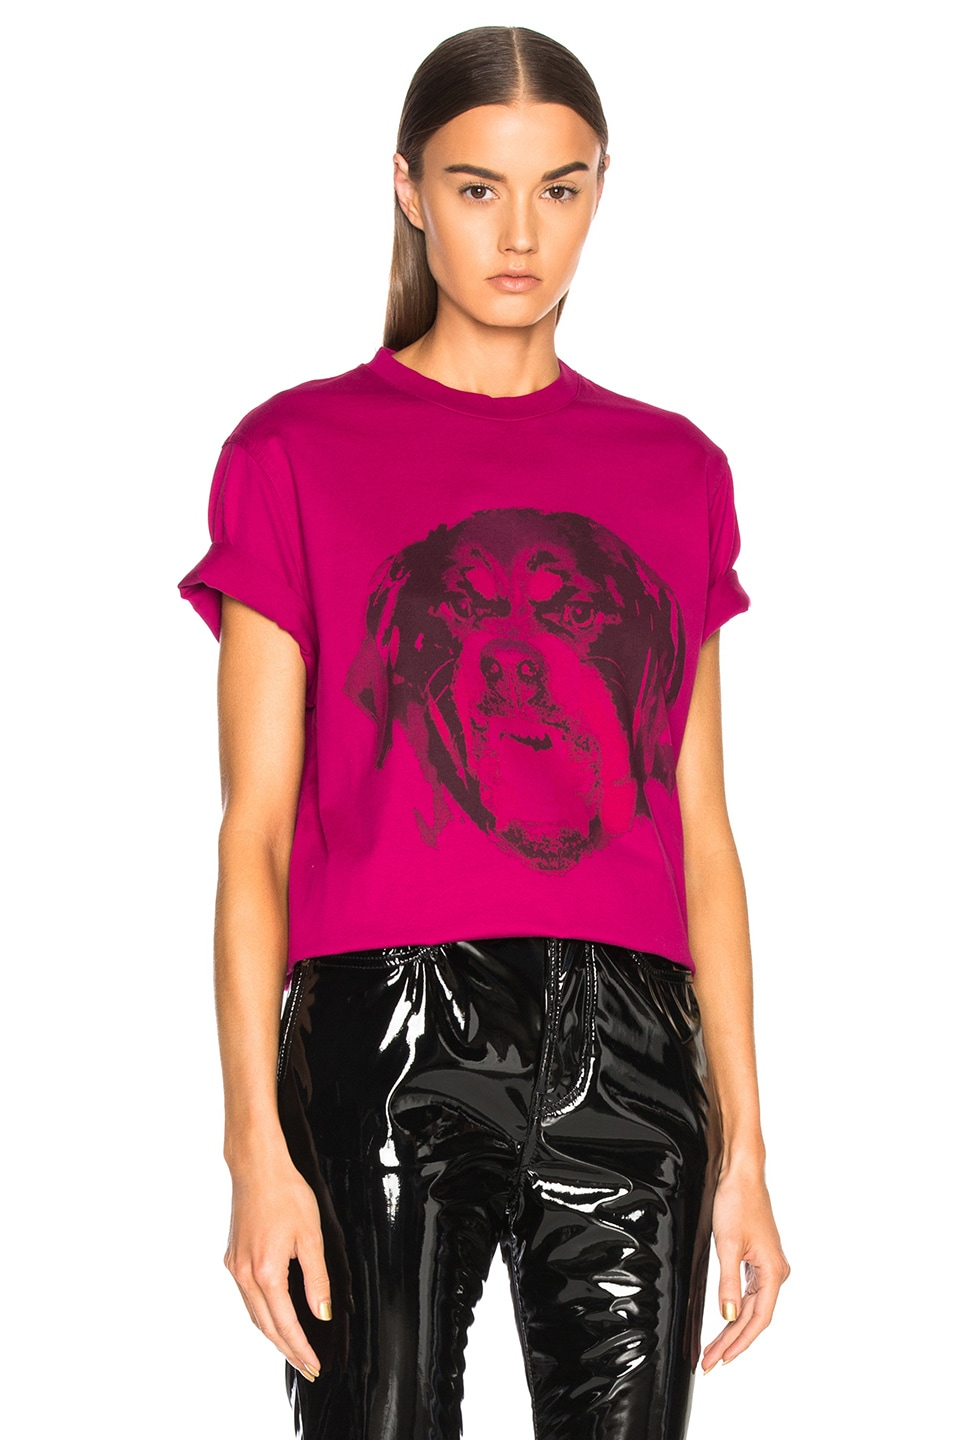 Givenchy Rottweiler Printed Graphic Tee in Pink